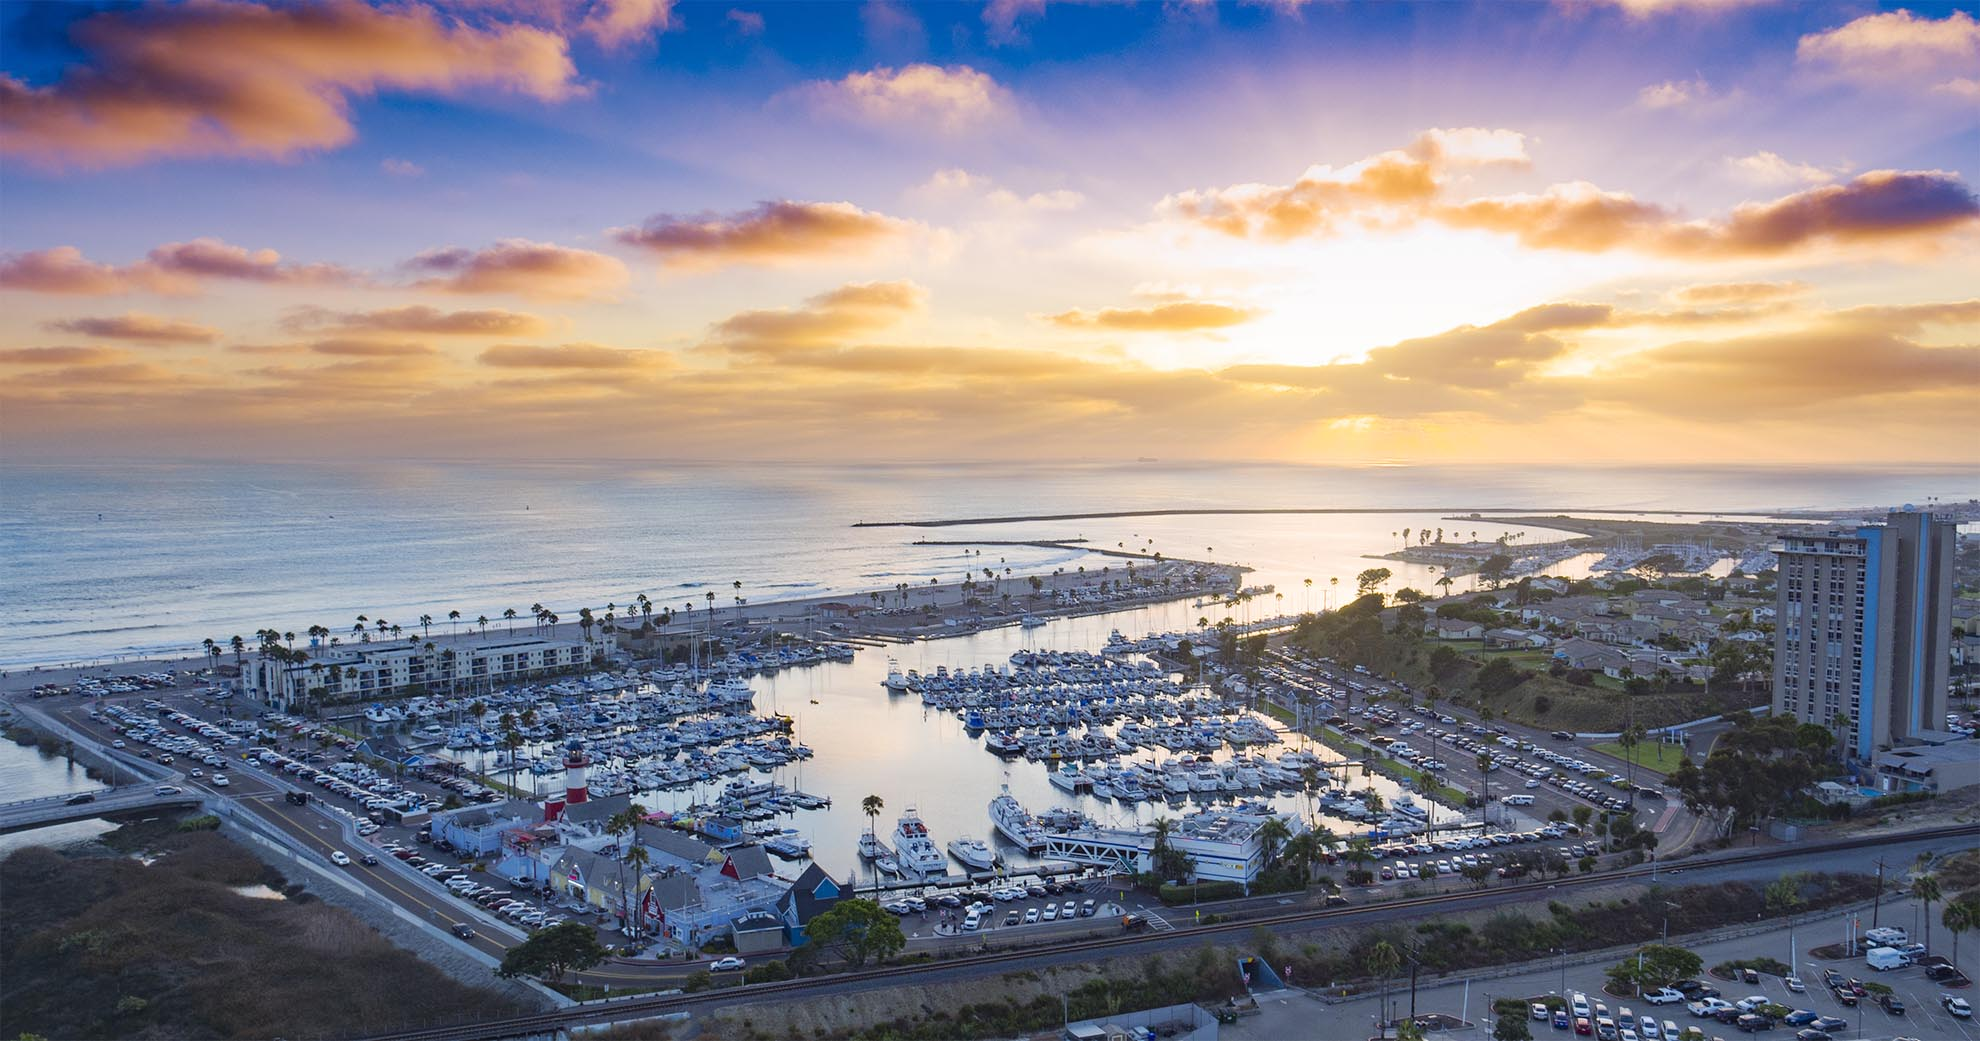 Drone photograph of Oceanside Harbor at sunset